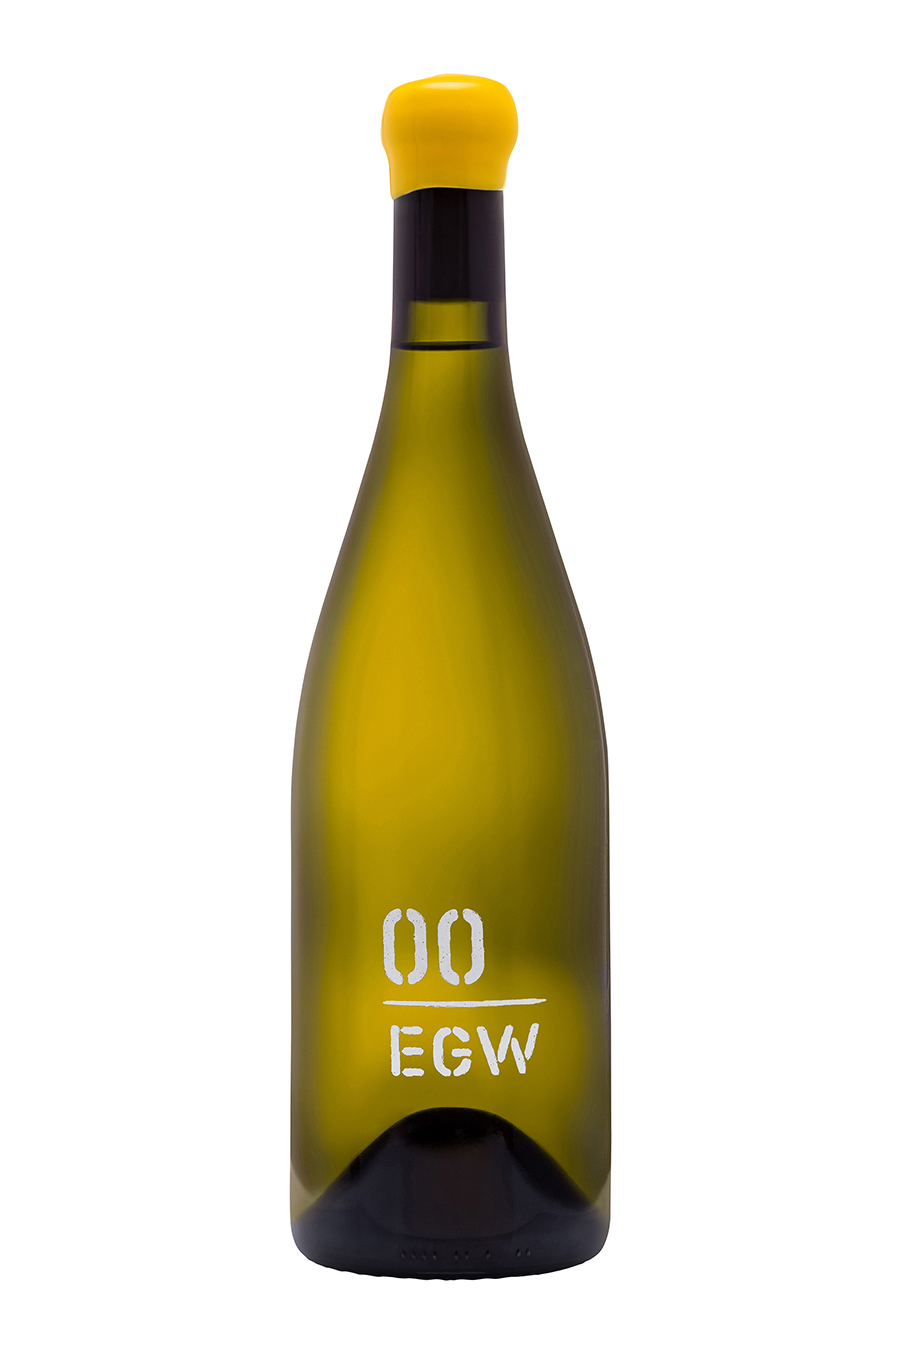 Bottle of EGW chardonnay